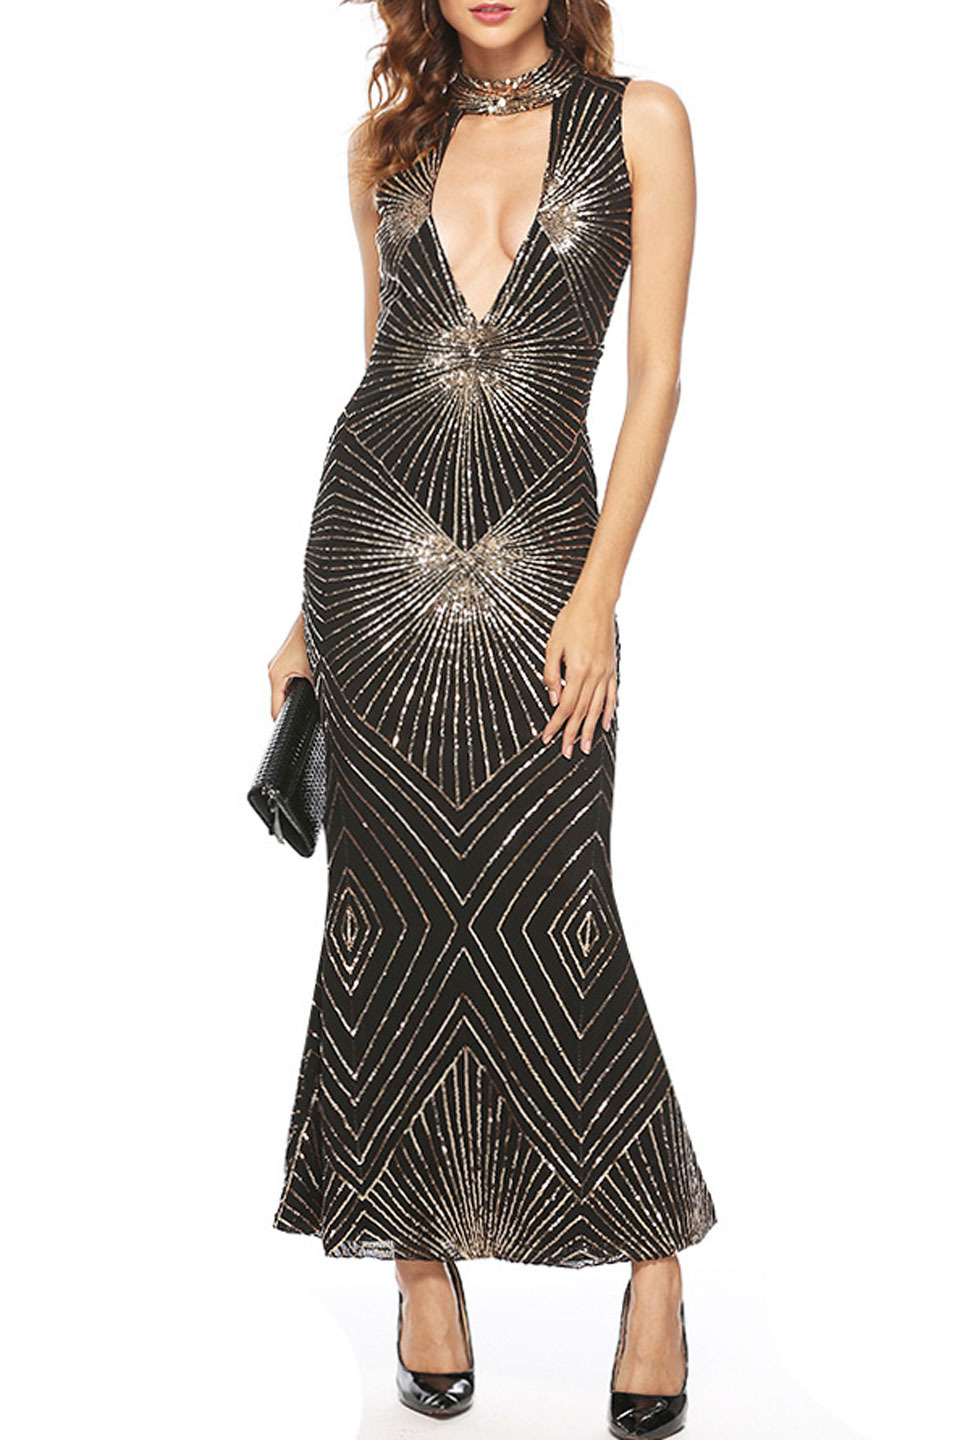 BETHANY DRESS IN BLACK AND GOLD